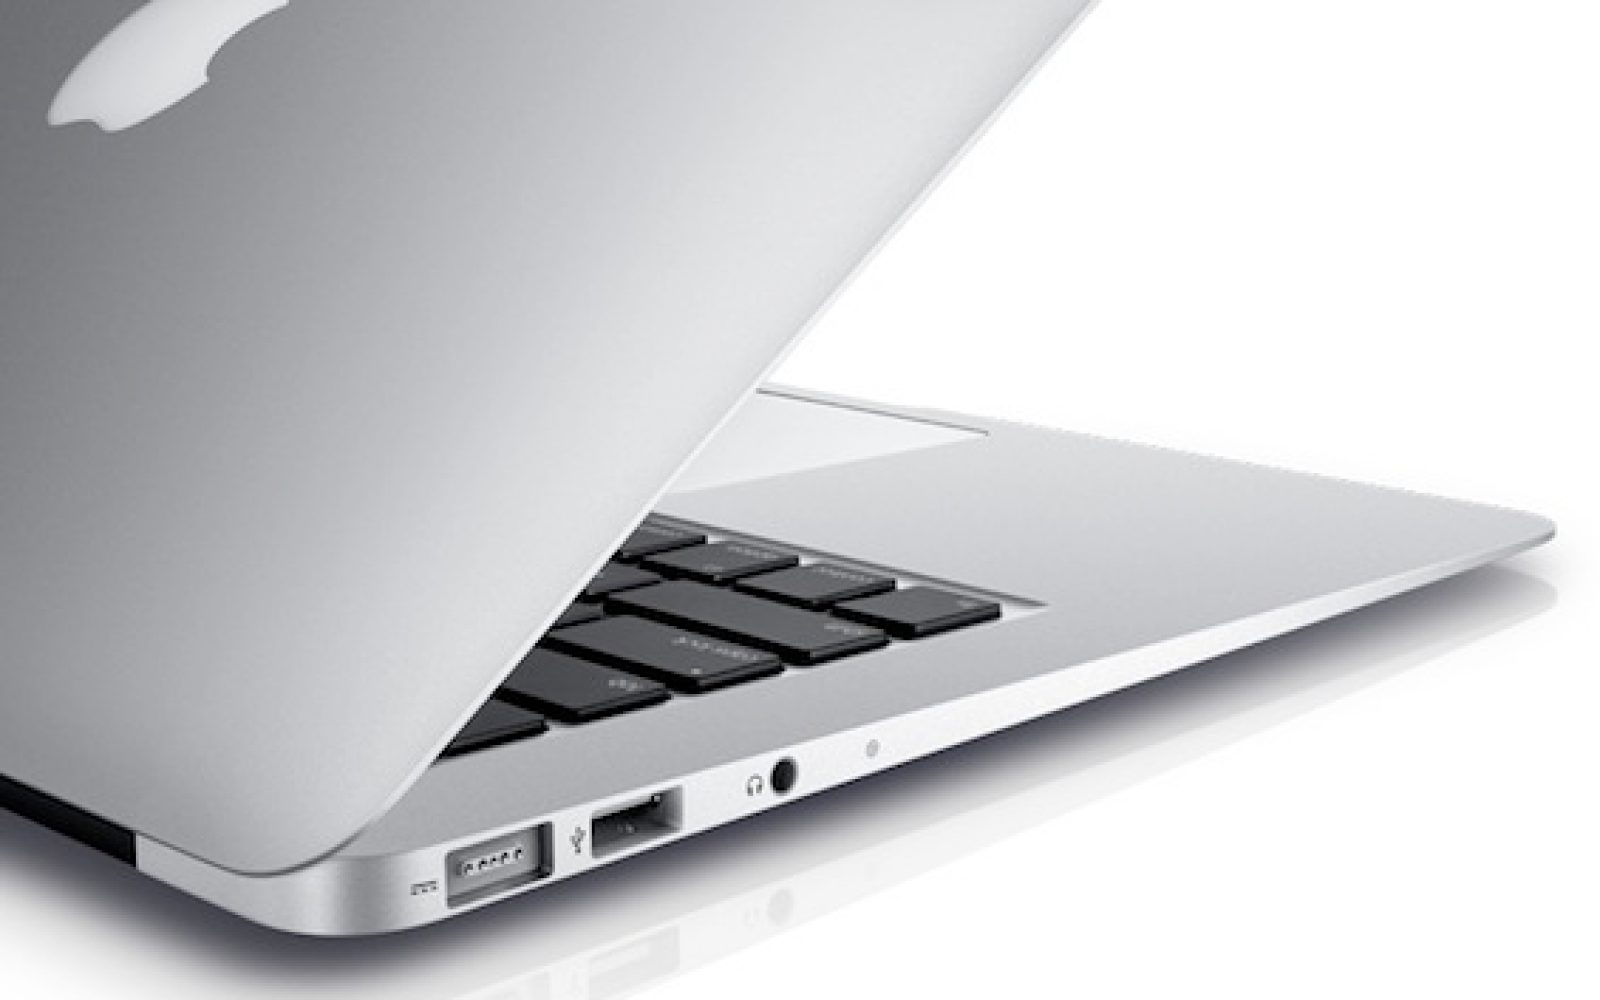 The new Air has scaled-down Thunderbolt chip: Two 10Gbps channels